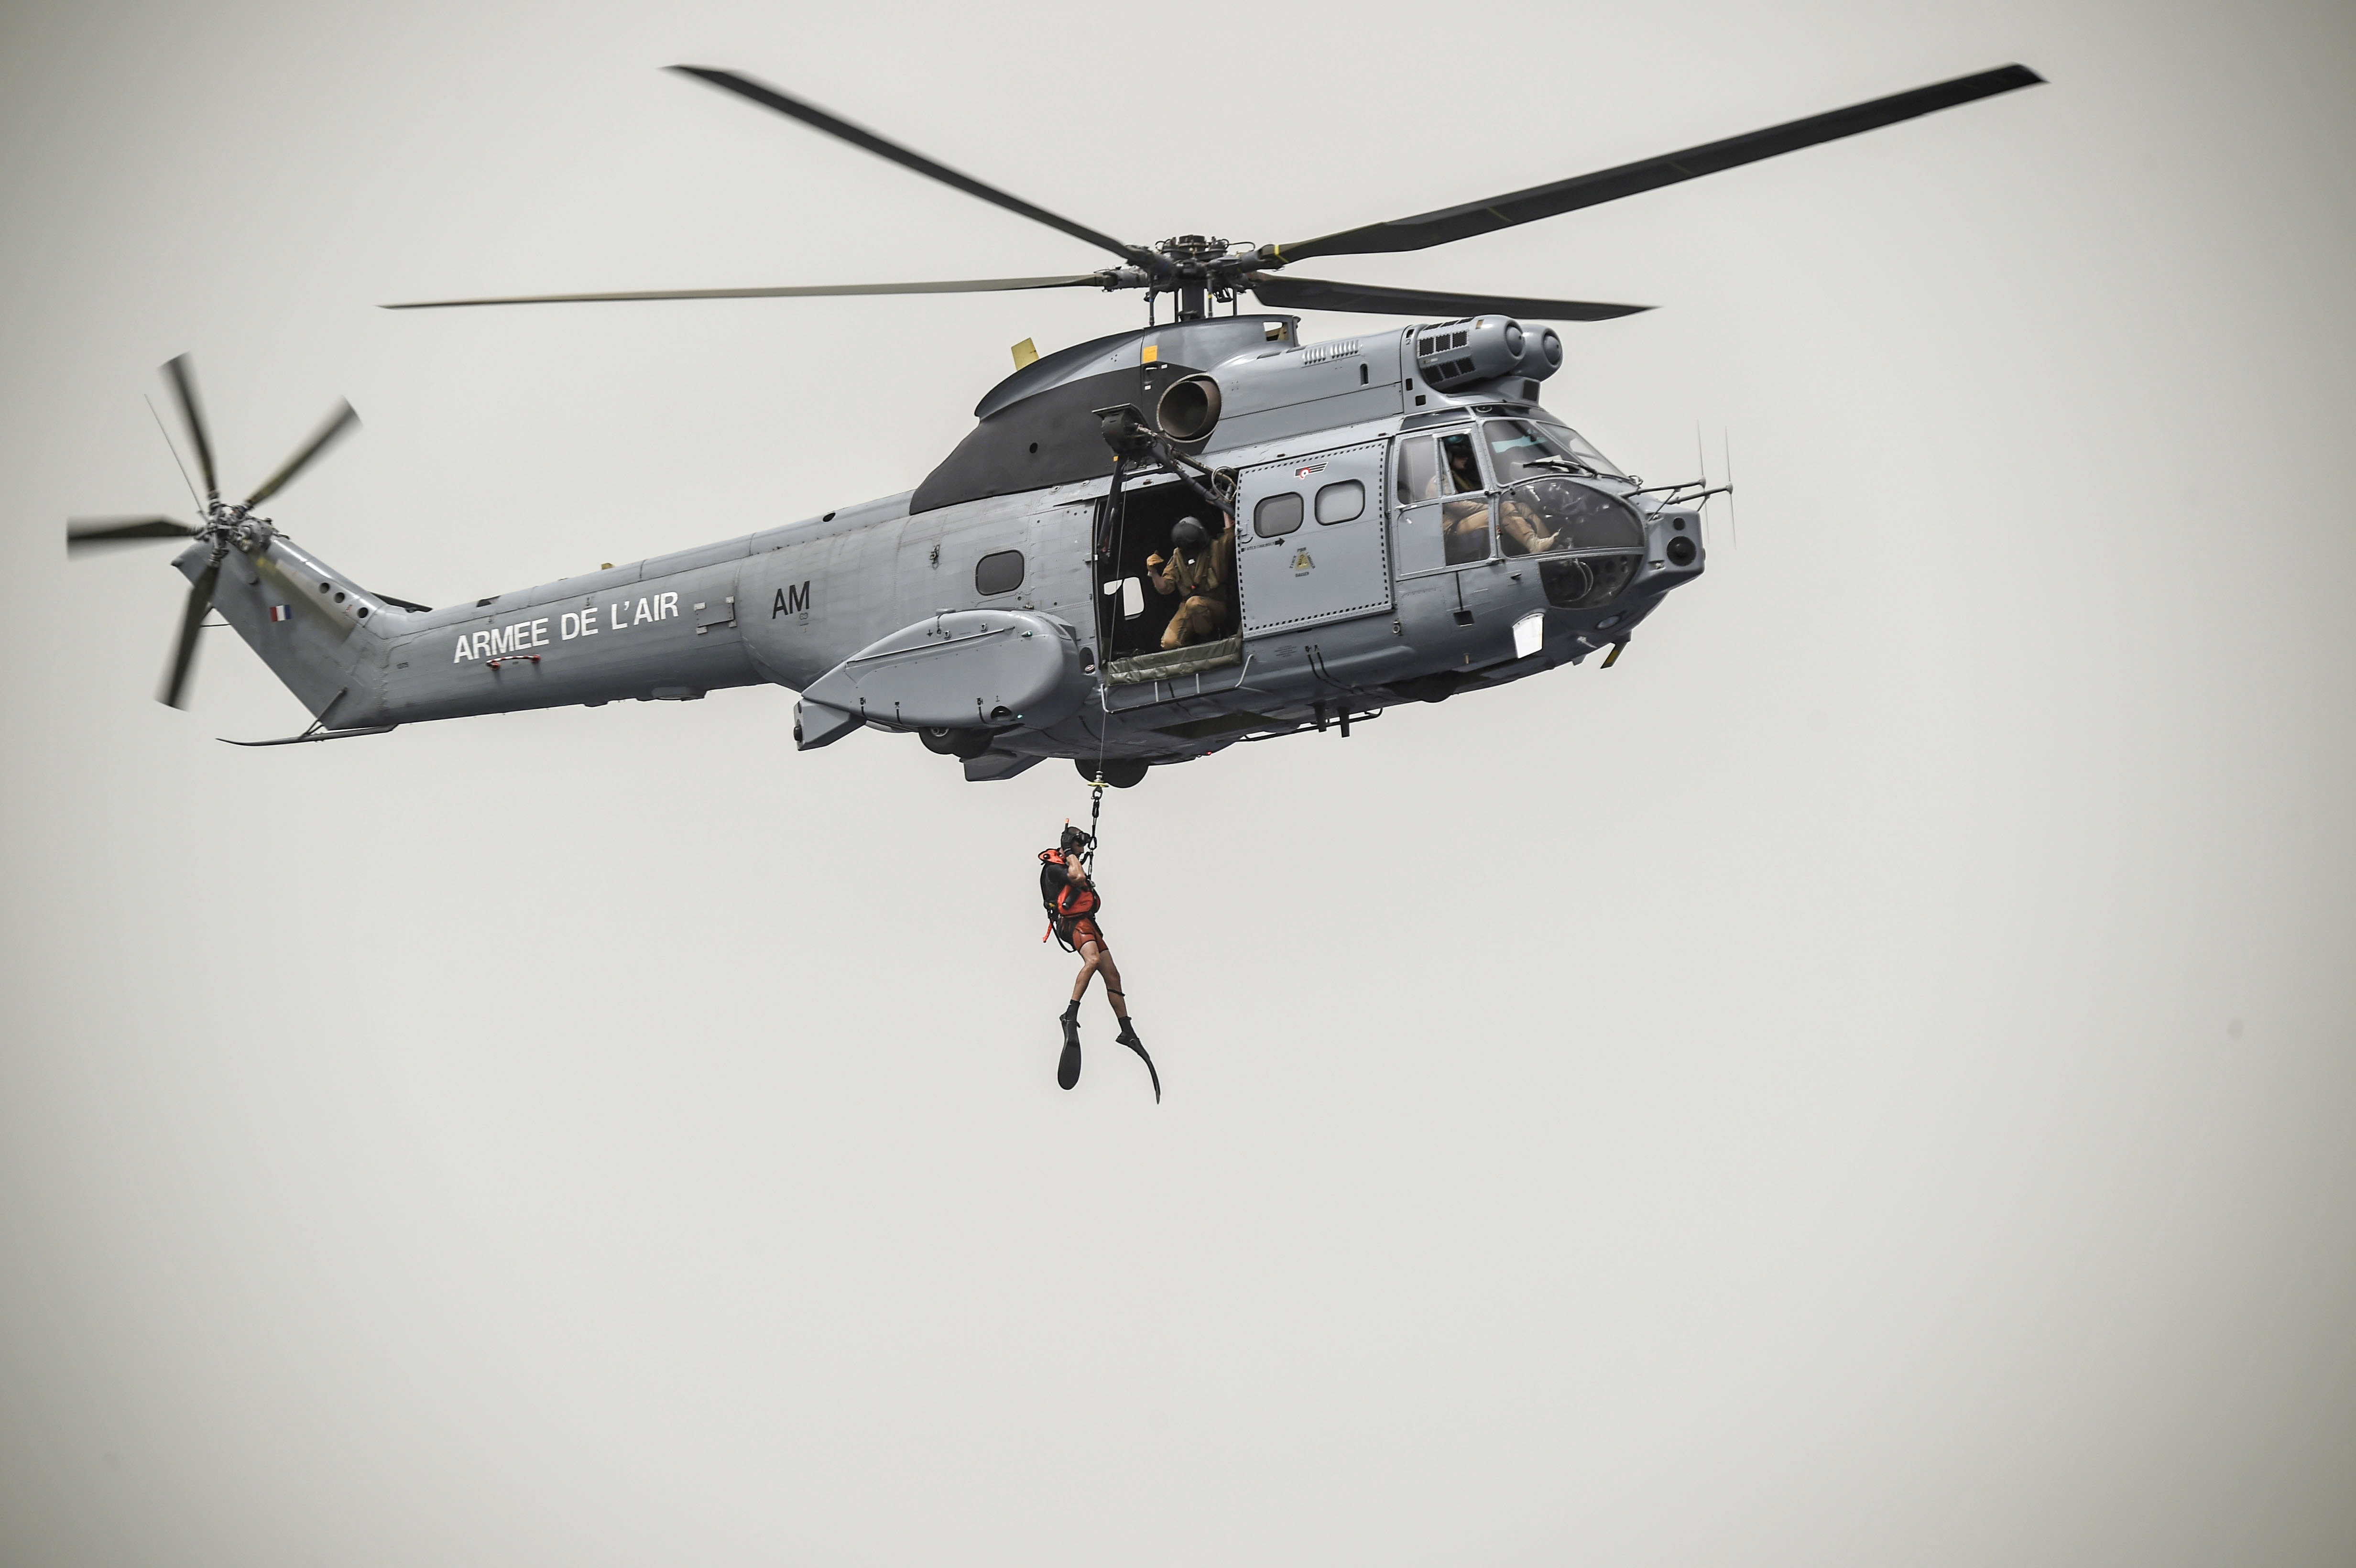 A French Air Force member assigned to the Transport Squadron ET 88 is hoisted from into a French Air Force Aérospatiale SA 330 Puma helicopter during a bilateral water operations exercise, in the Gulf of Tadjoura, July 3, 2017. The results of the exercise will aid in the development of standard operating procedures between CJTF-HOA and the French Forces stationed in Djibouti for the U.S. and France's mutual support of maritime rescue capabilities within the Horn of Africa region.  (U.S. Air Force photo by Staff Sgt. Eboni Prince)